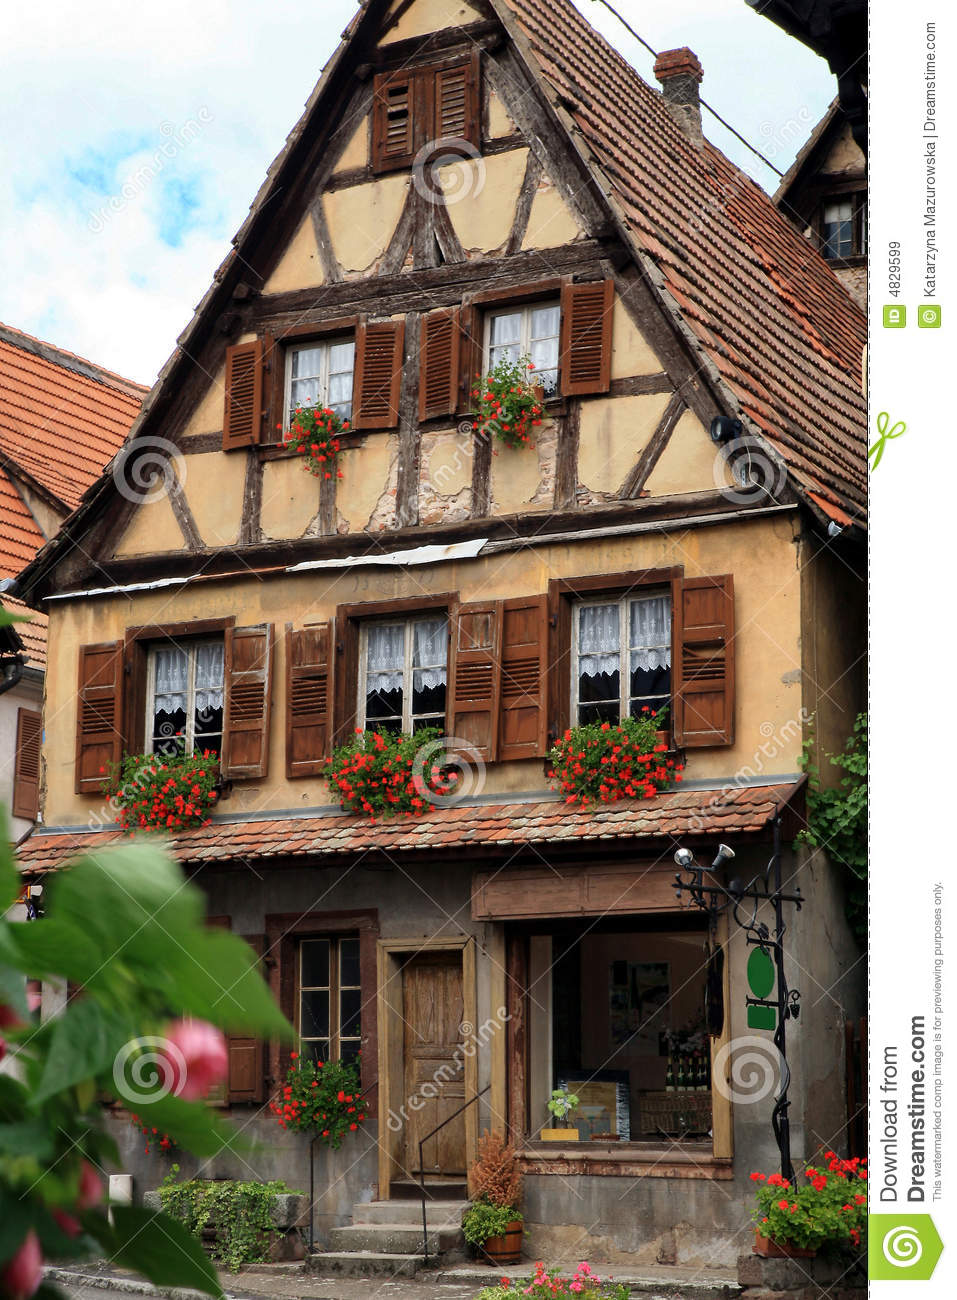 French Village Alsace France Royalty Free Stock Images